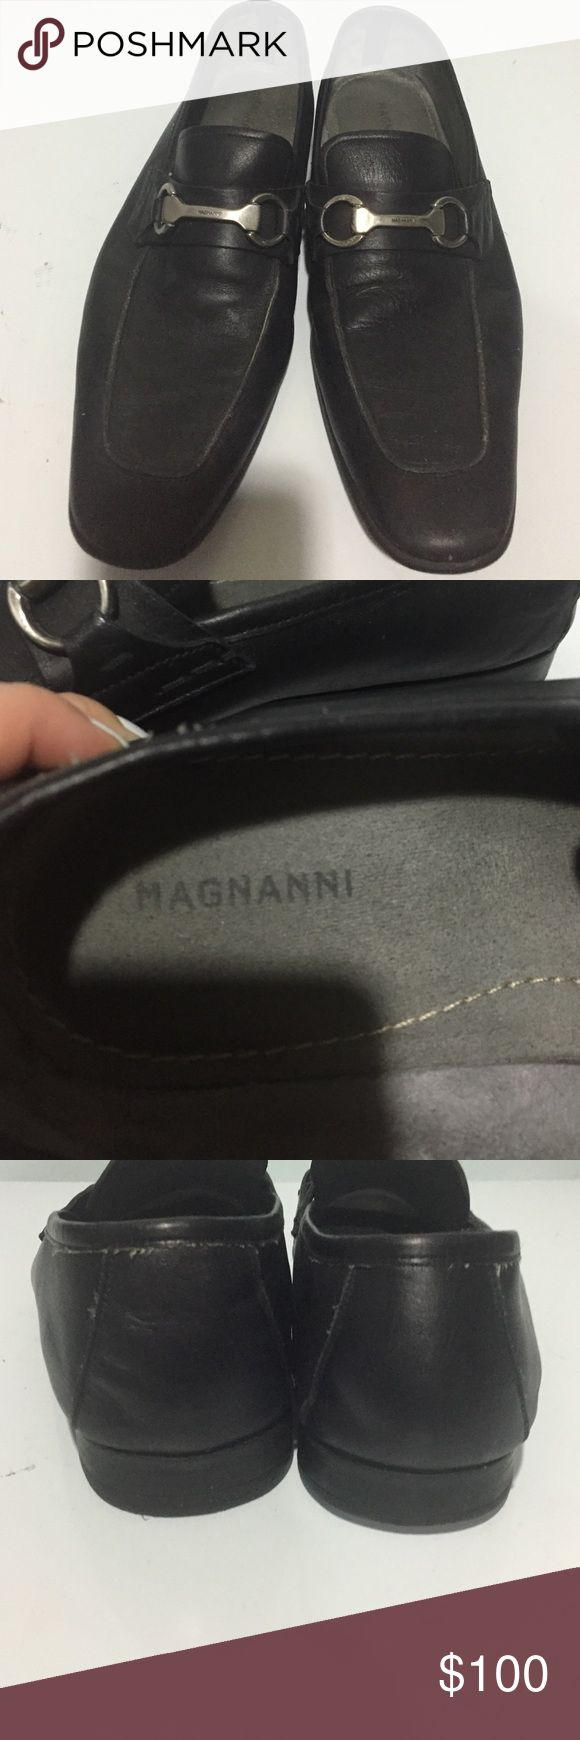 Magnanni Men shoes Magnanni made in Spain very soft leather Magnanni Shoes Loafe...